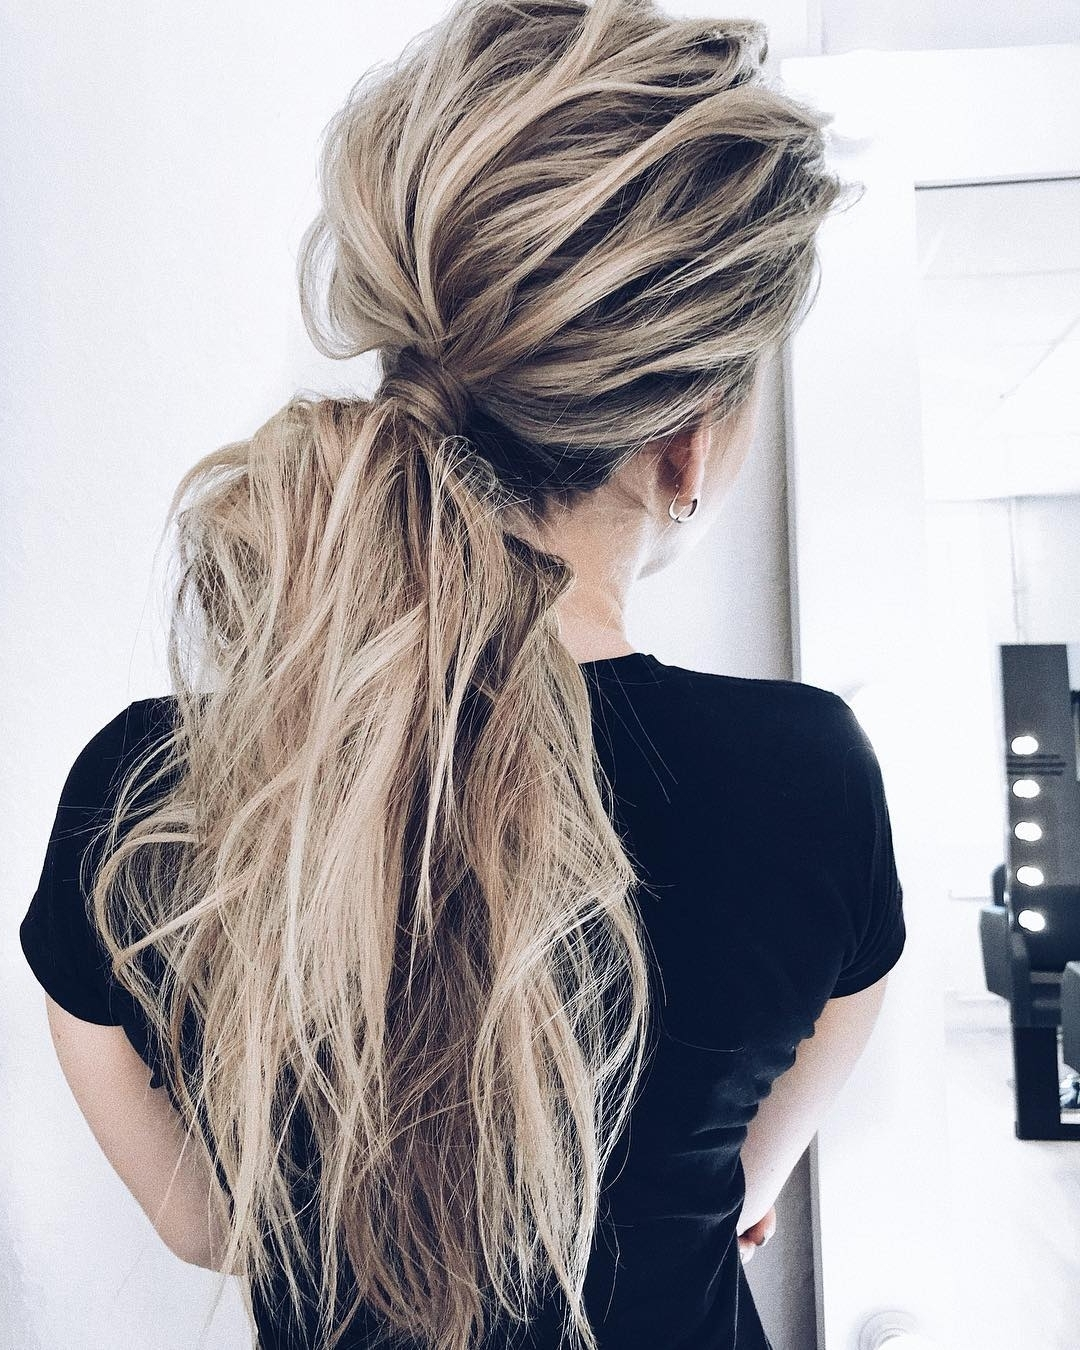 10 Creative Ponytail Hairstyles For Long Hair, Summer Hairstyle Intended For 2017 Loosely Braided Ponytail Hairstyles (View 18 of 20)